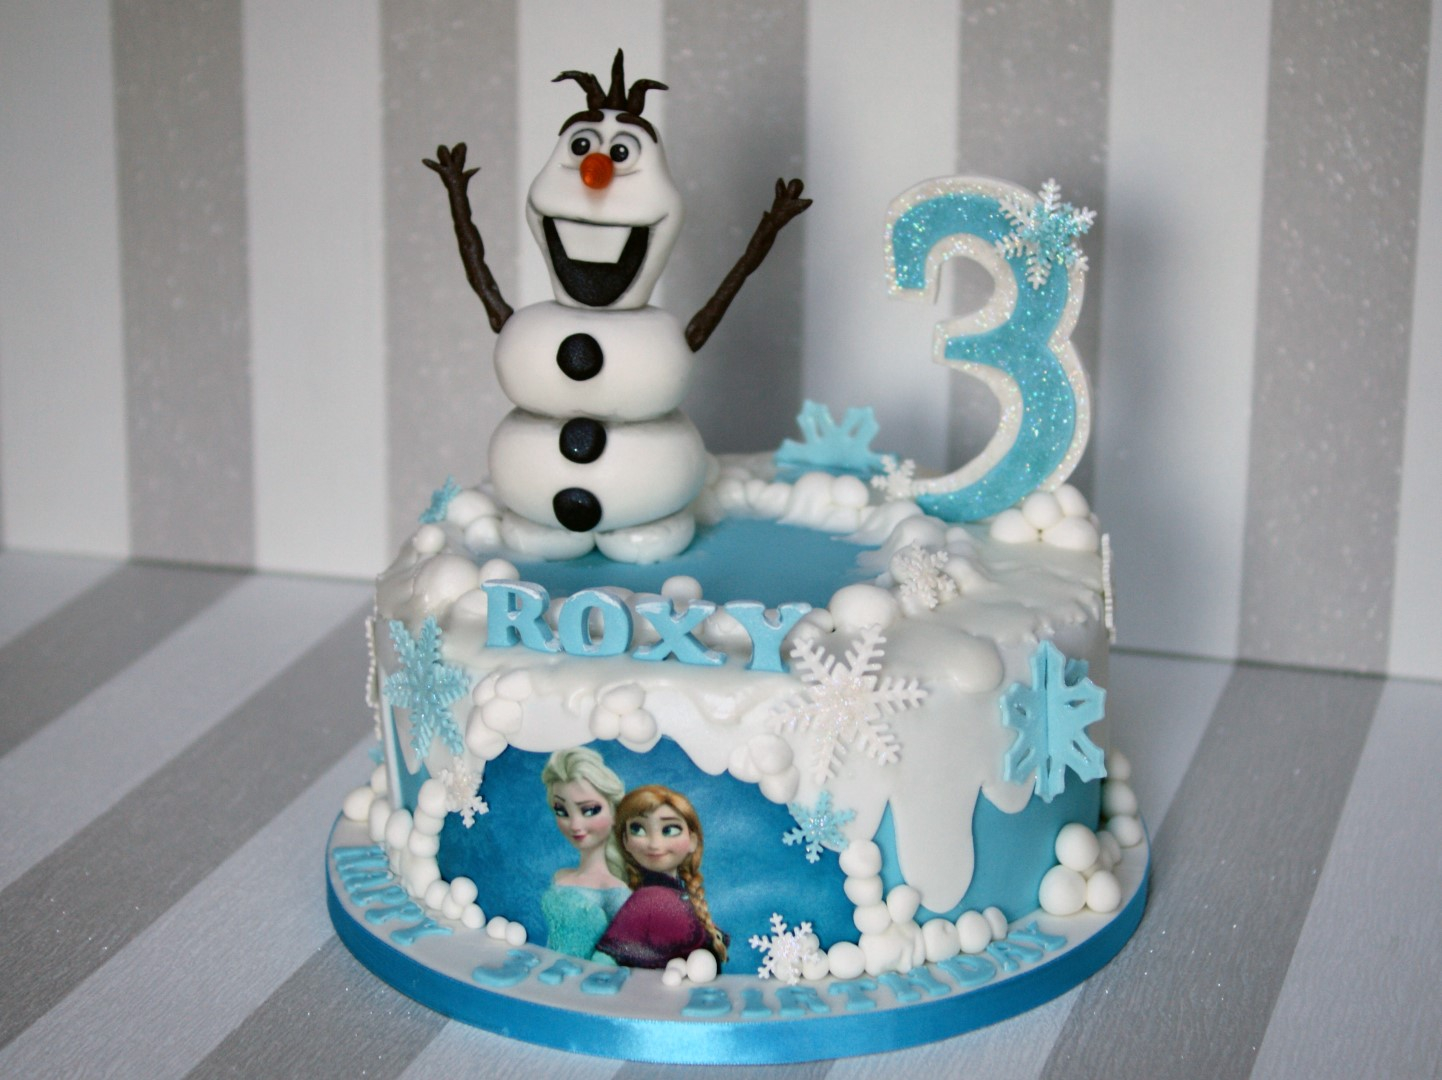 Olaf Birthday Cake Disney Frozen Cake Olaf And Elsa Birthday Cake Bakealous